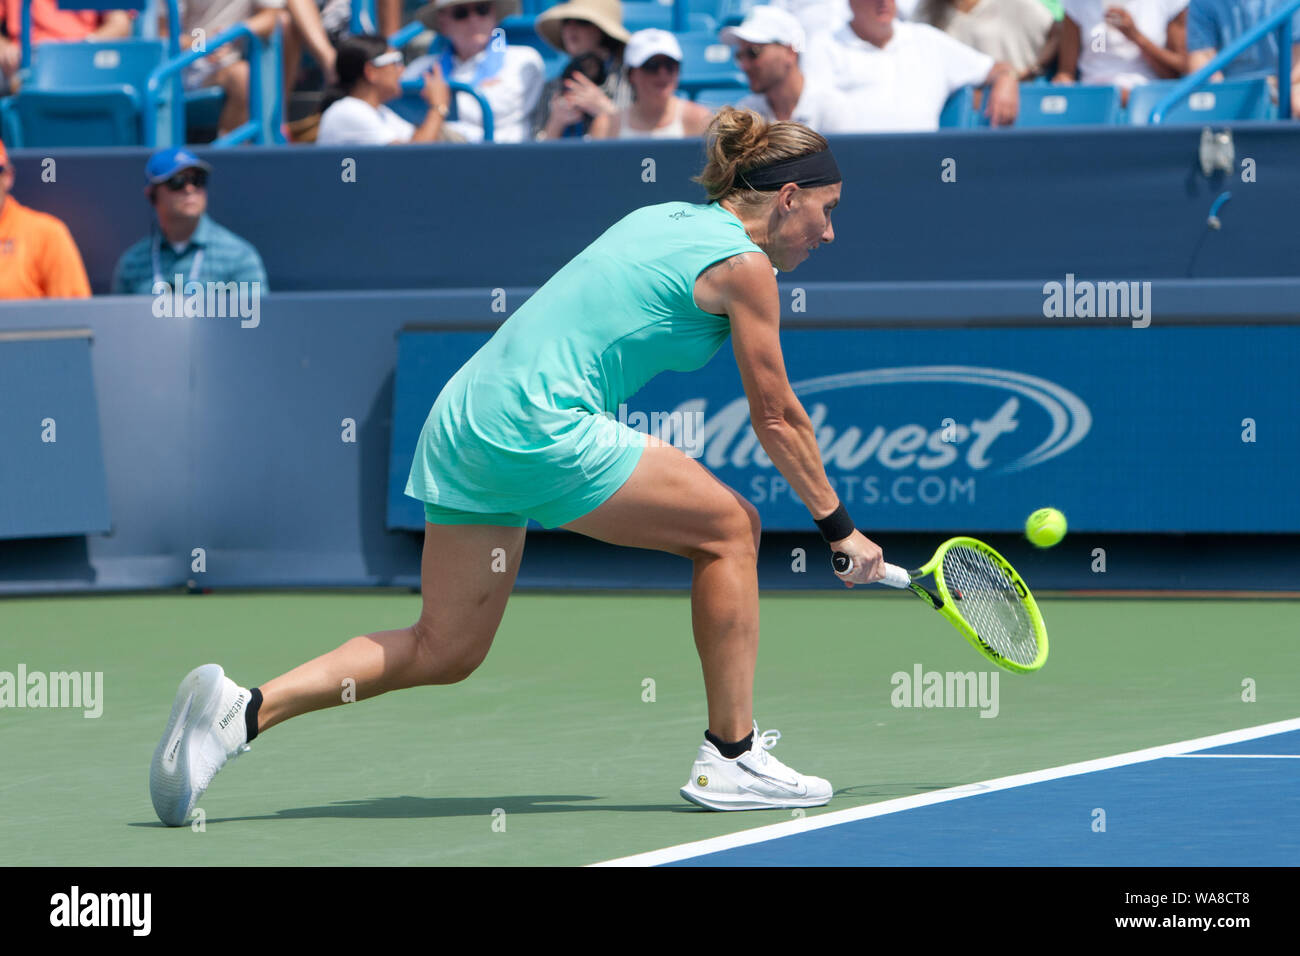 Cincinnati, OH, USA. 18th Aug, 2019. Western and Southern Open Tennis, Cincinnati, OH; August 10-19, 2019. Svetlana Kuznetsova plays a ball against opponent Madison Keys the Western and Southern Open Tennis tournament played in Cincinnati, OH. Keys won 7-5 7-6. August 18, 2019. Photo by Wally Nell/ZUMAPress Credit: Wally Nell/ZUMA Wire/Alamy Live News Stock Photo